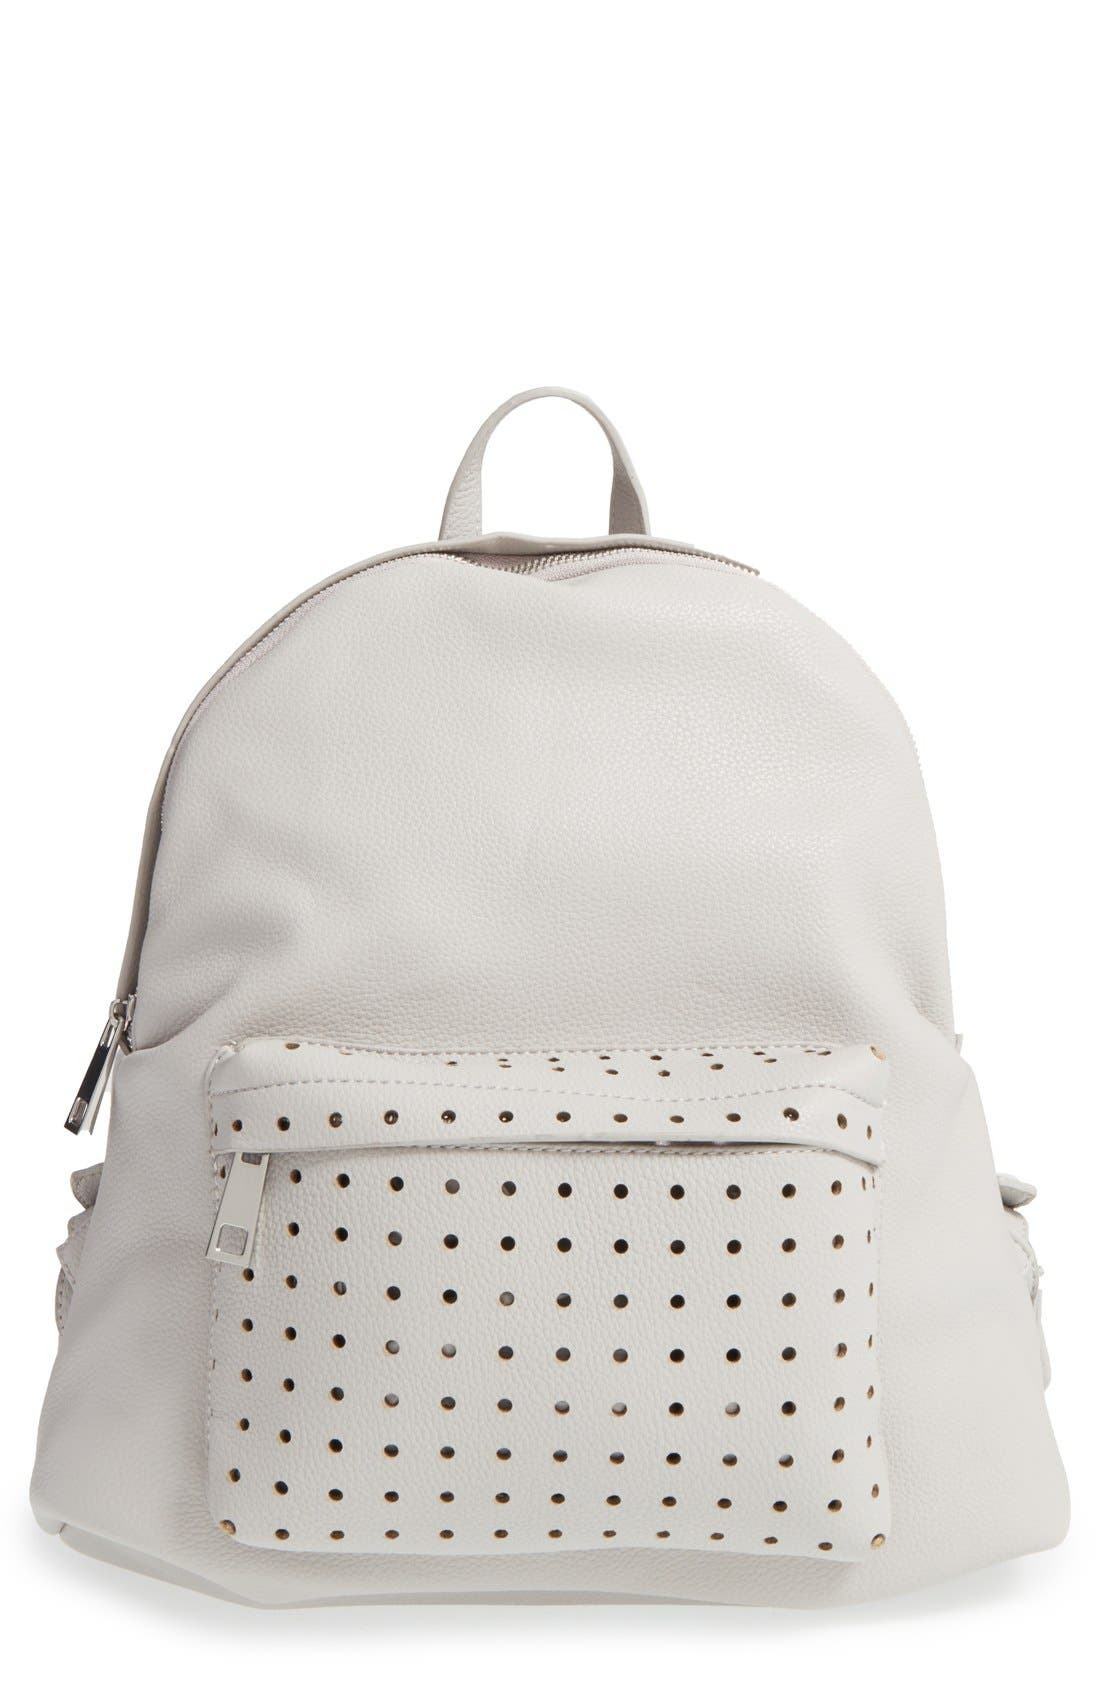 Main Image - Street Level Perforated Faux Leather Backpack